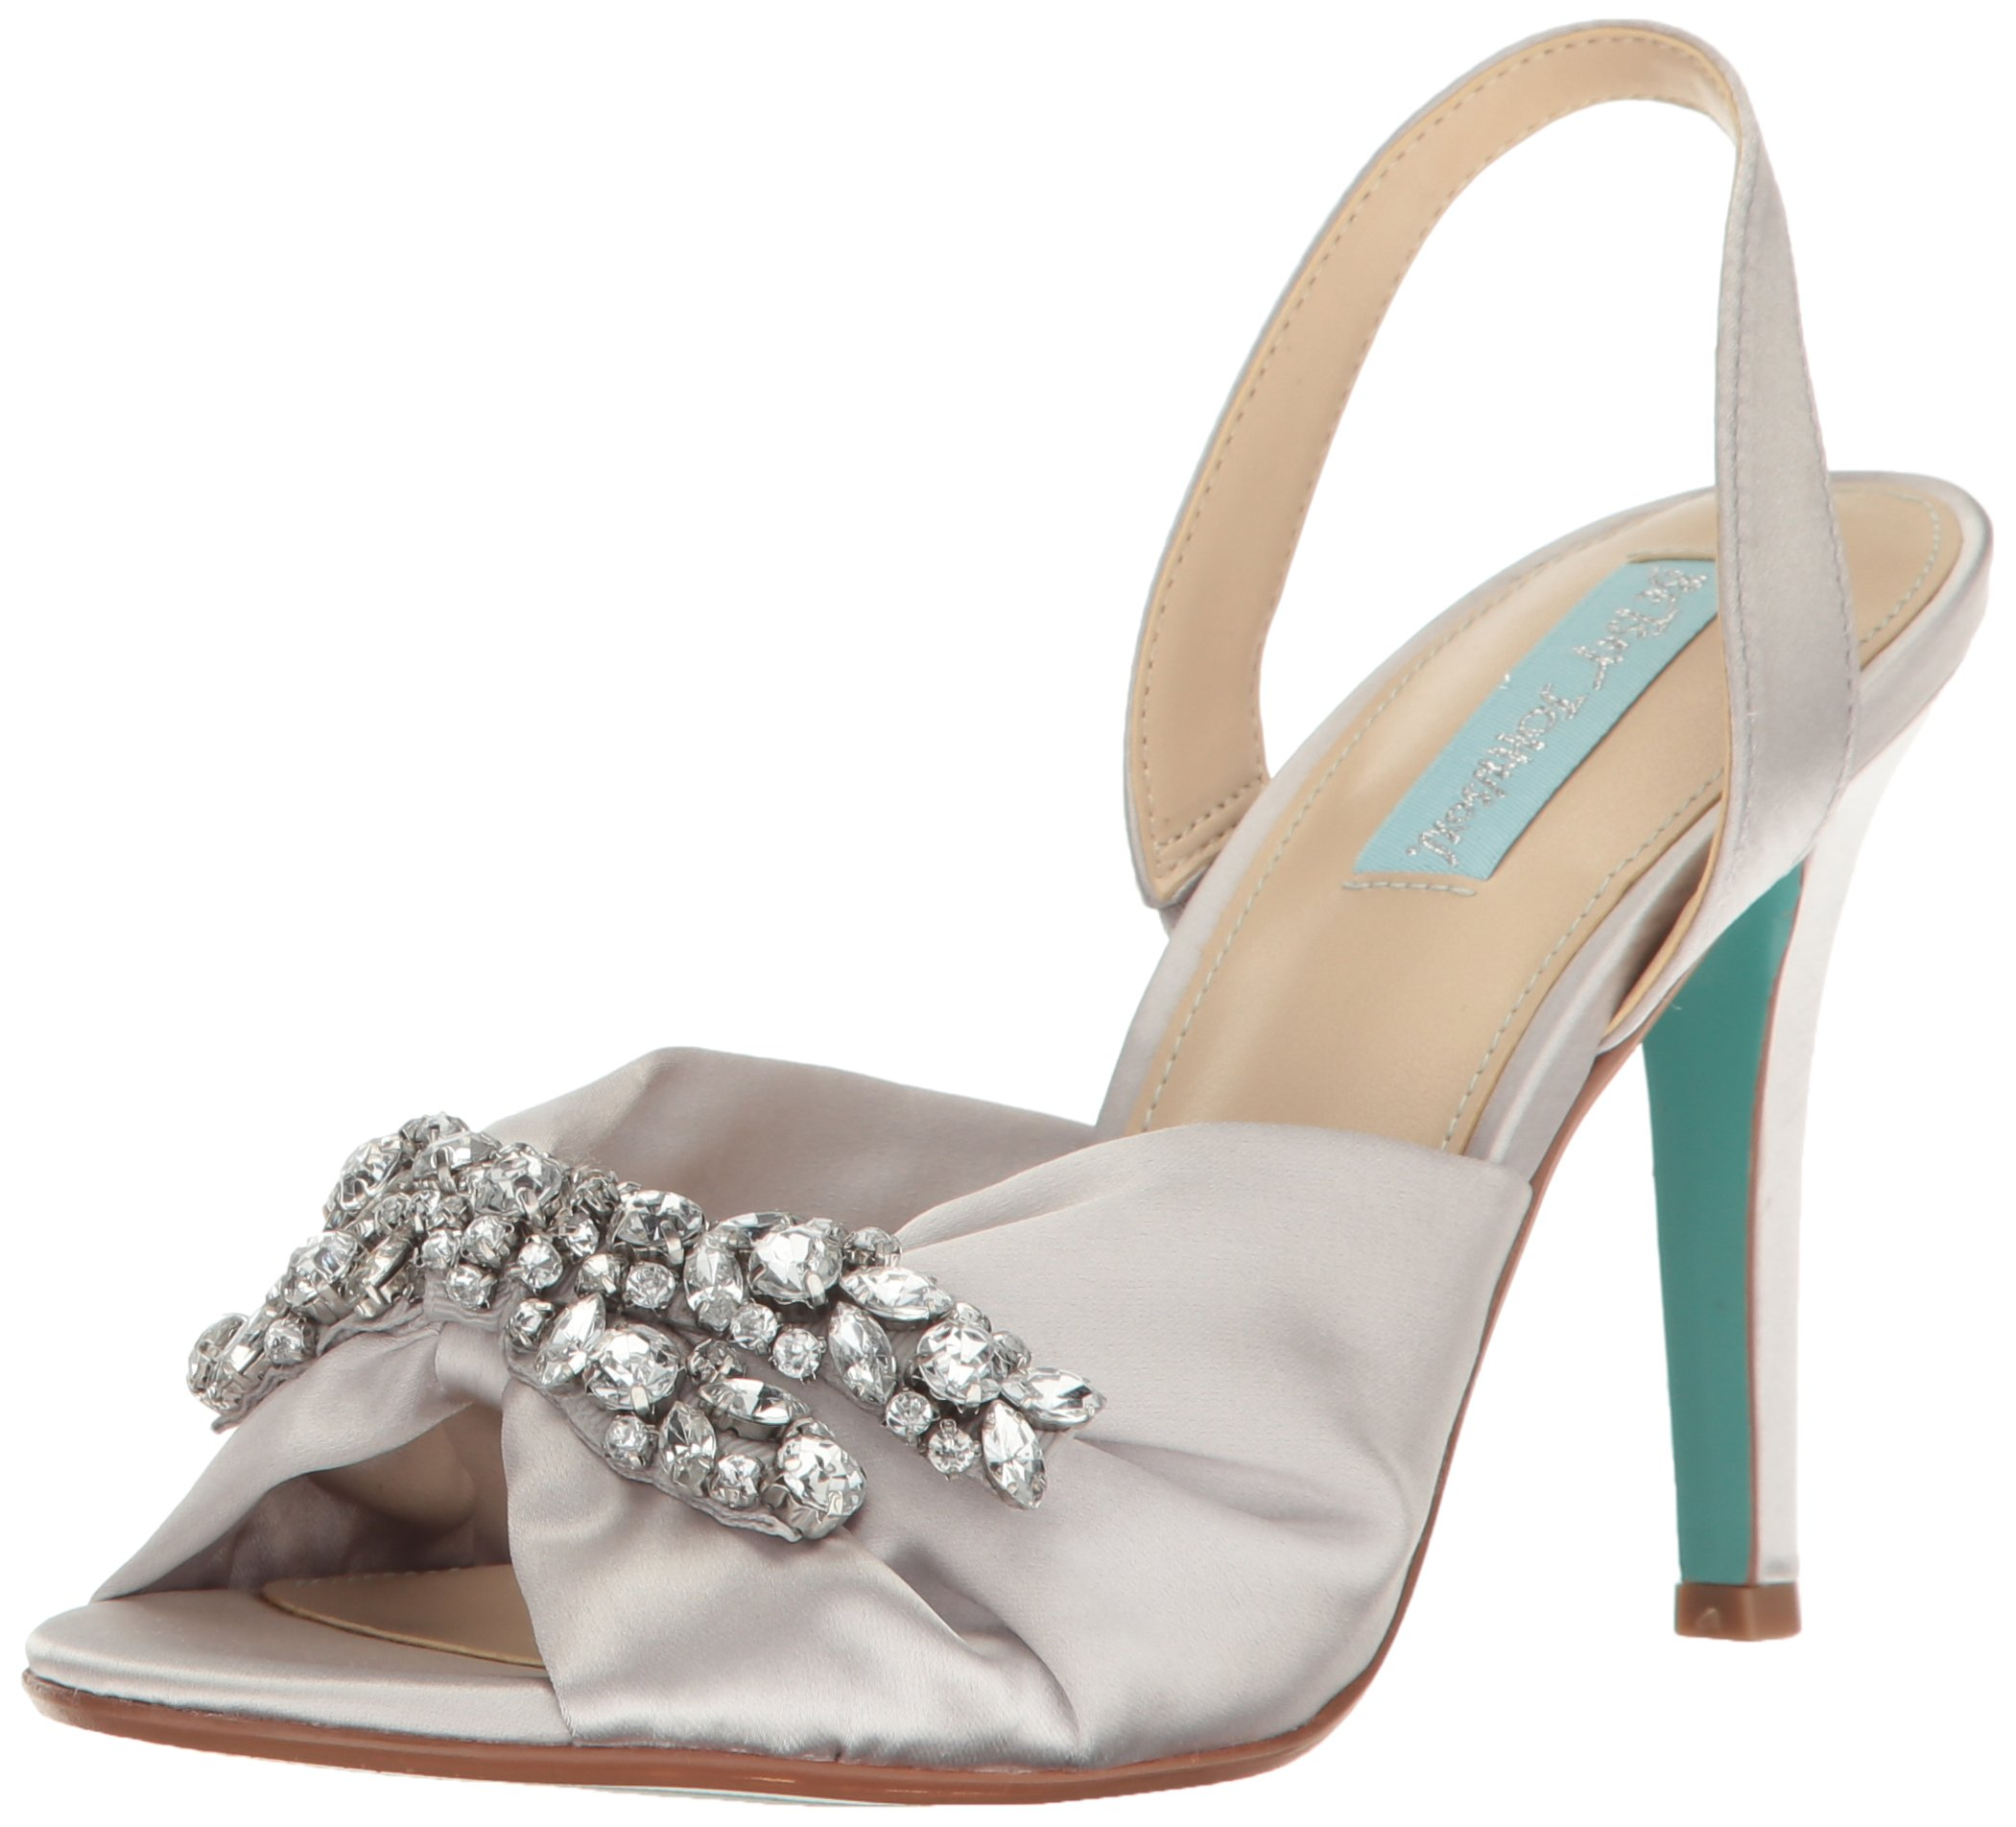 Blue by Betsey Johnson Women's SB-briel Dress Sandal, Silver Satin, 10 M US